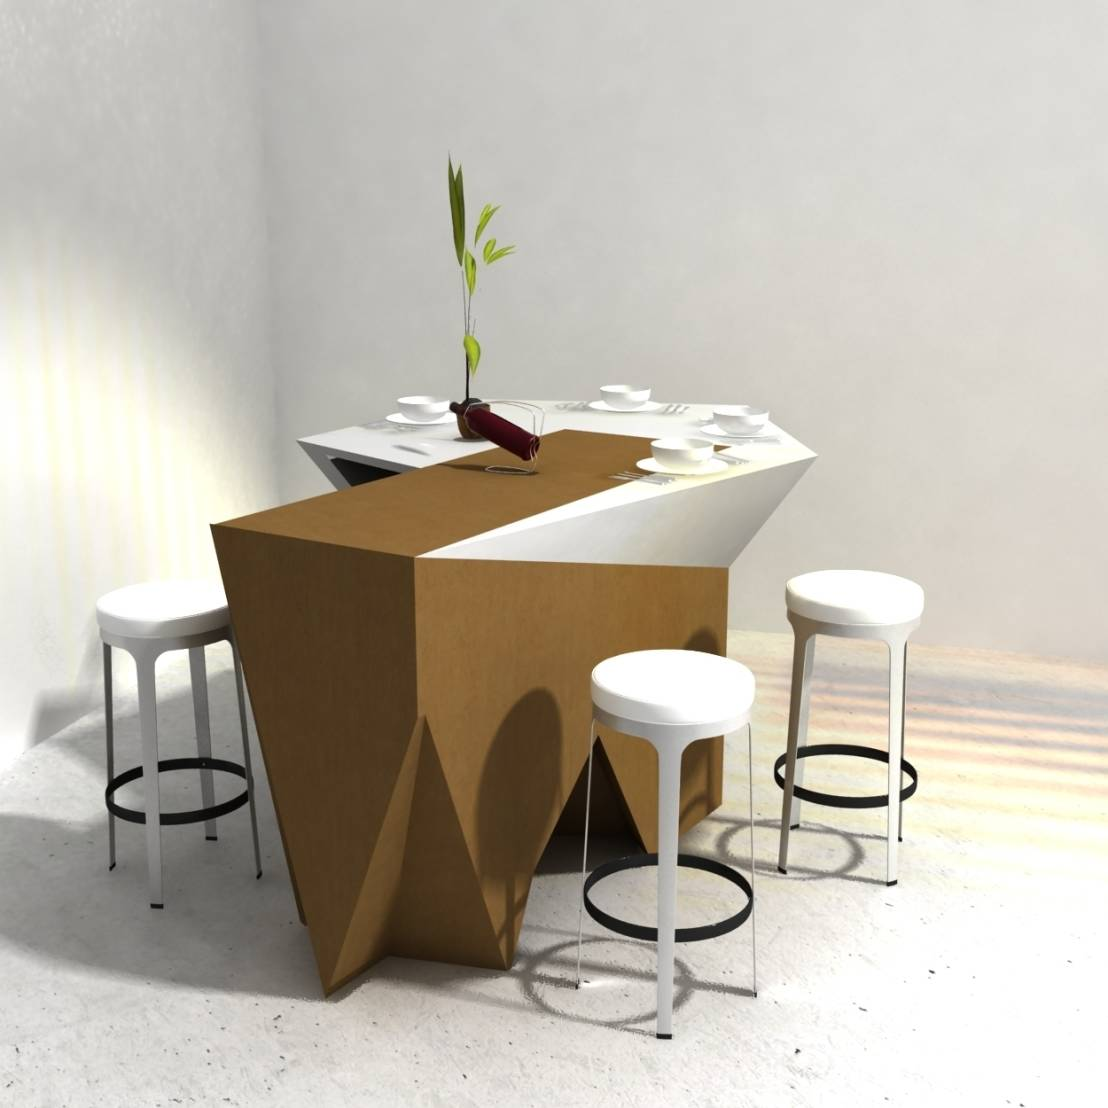 Geometric wooden furniture for Meuble furniture